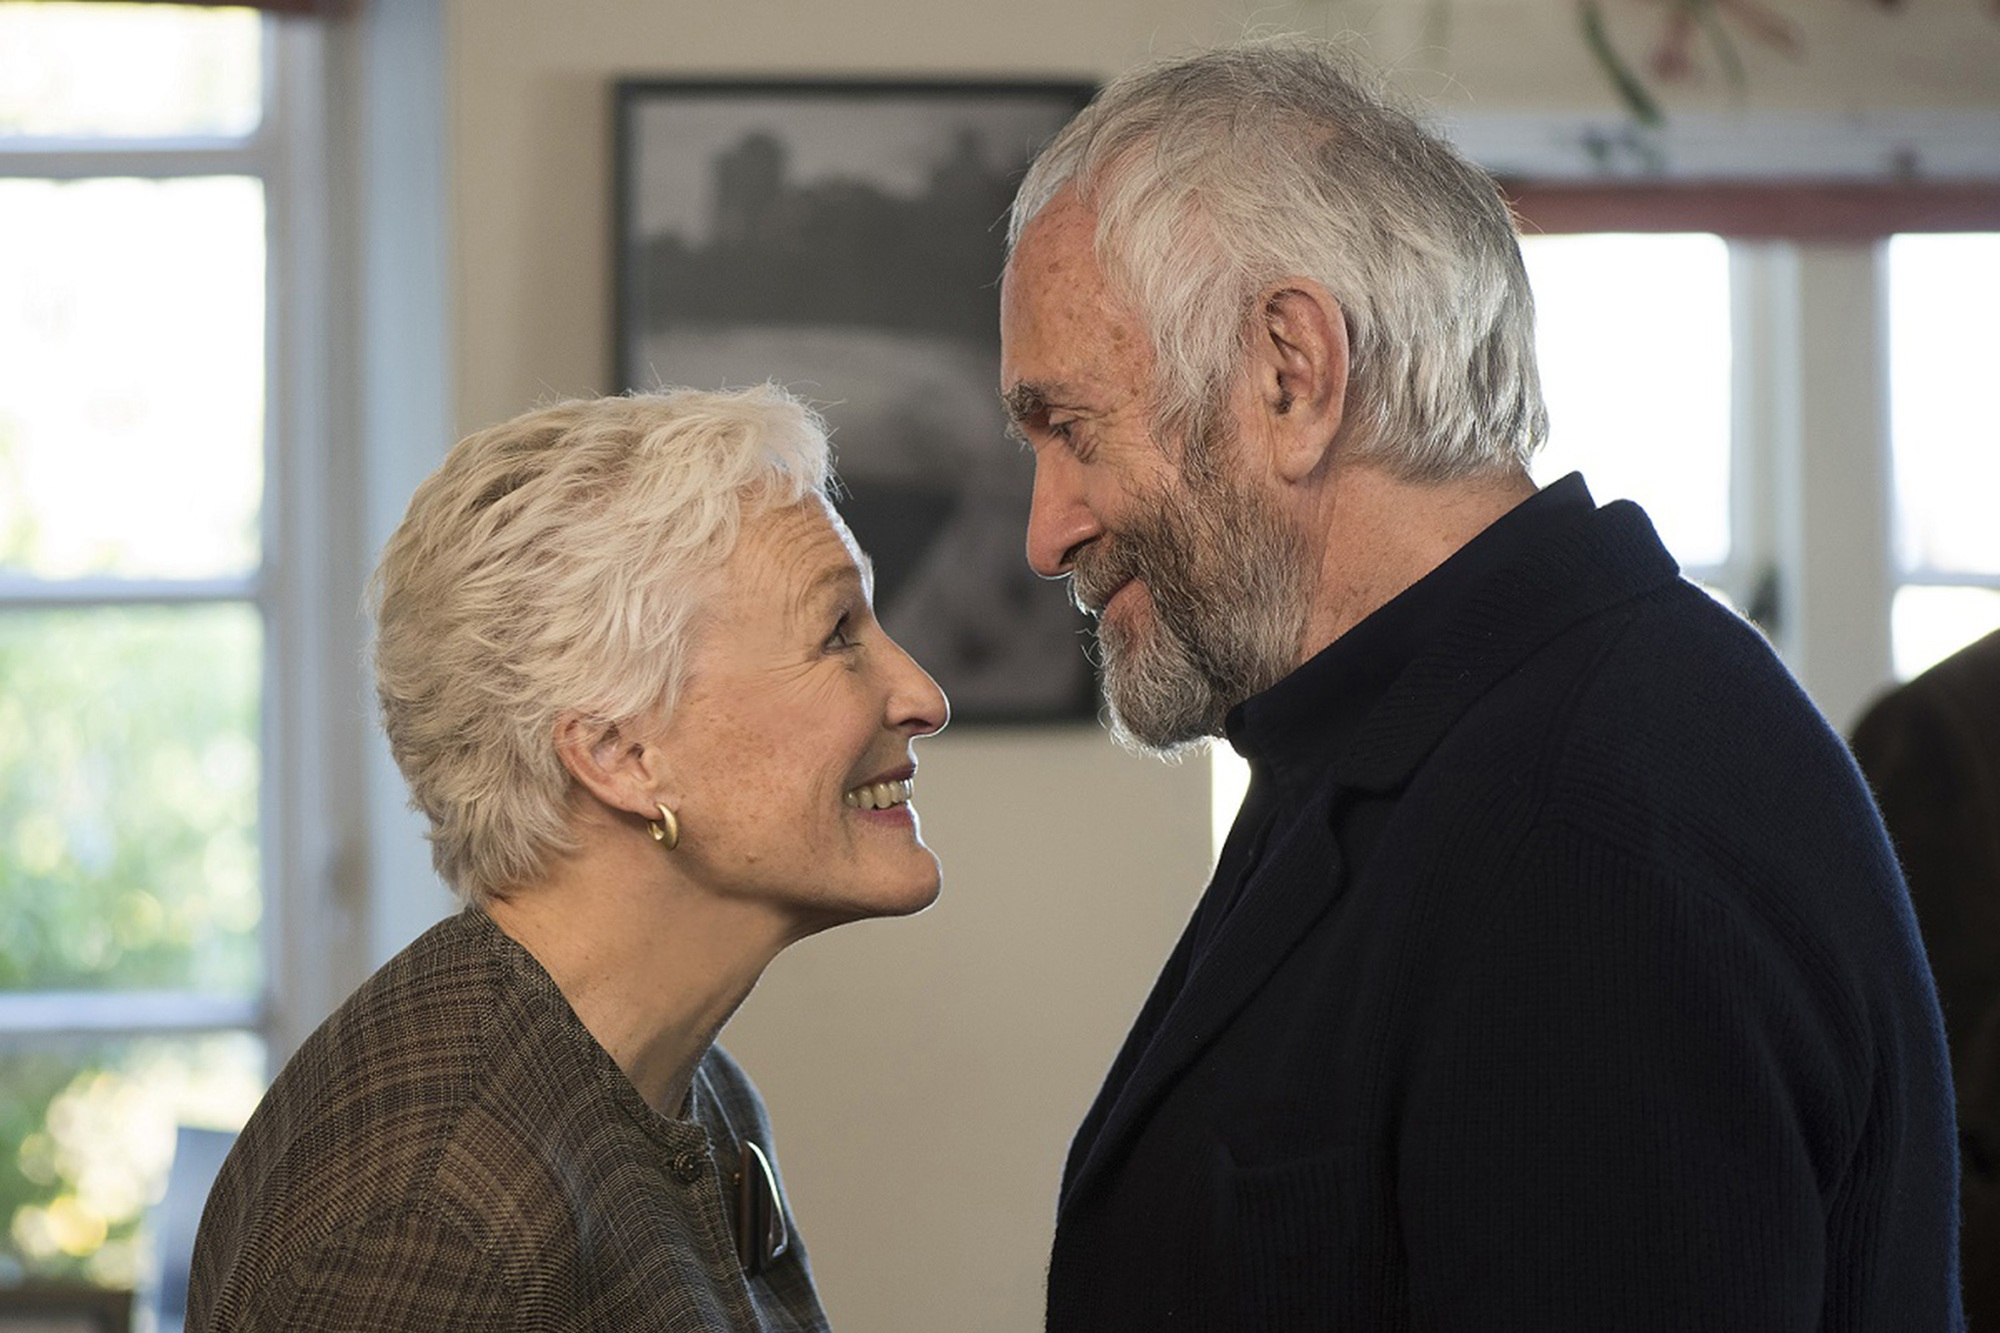 The Wife - Vivere nell'ombra: Glenn Close e Jonathan Pryce in un momento del film